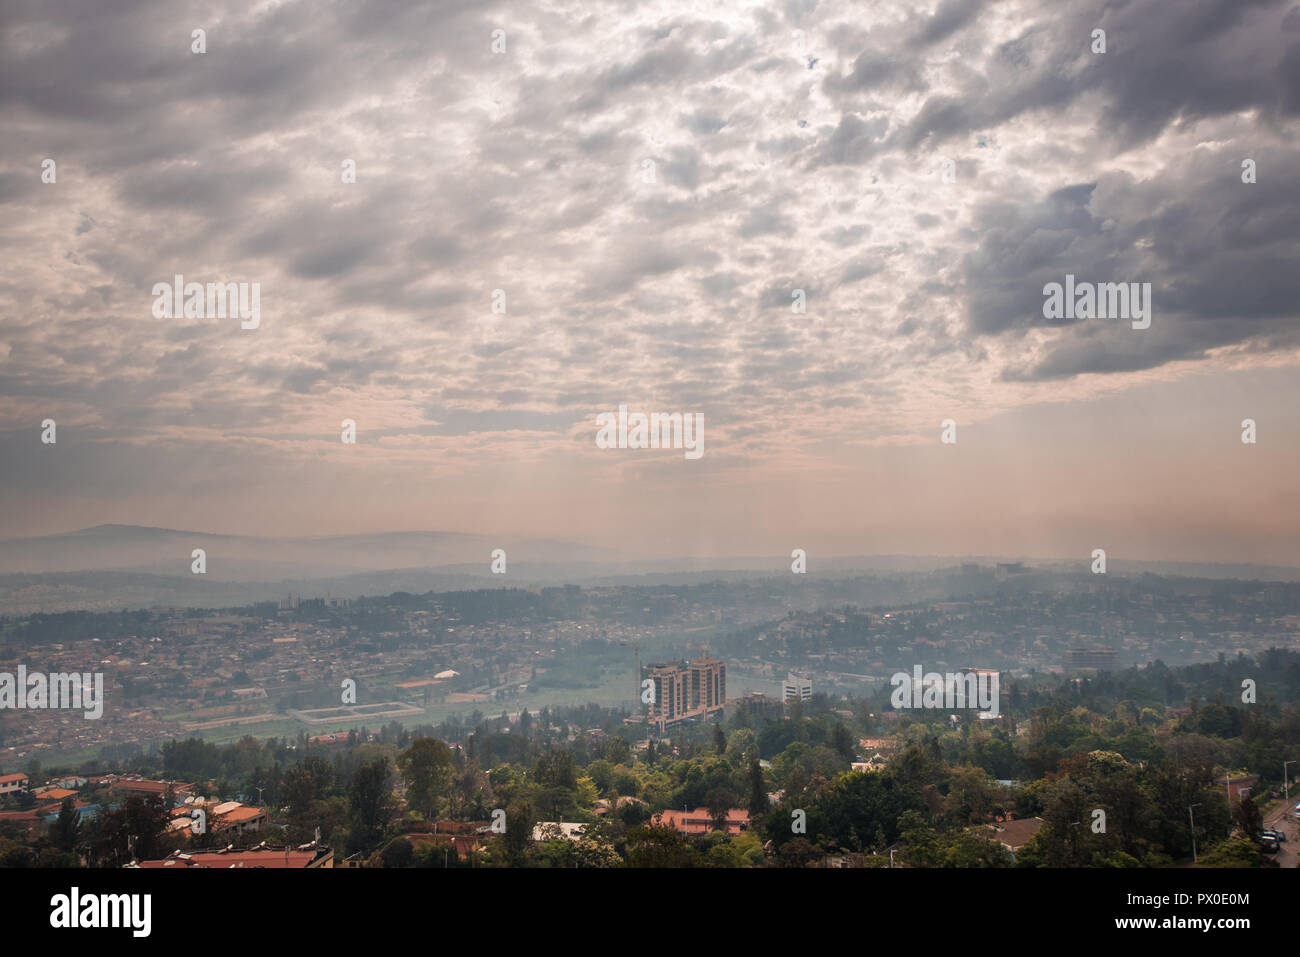 Sunlight breaks through the clouds over the hills of Rwanda that stretch into the distace - Stock Image